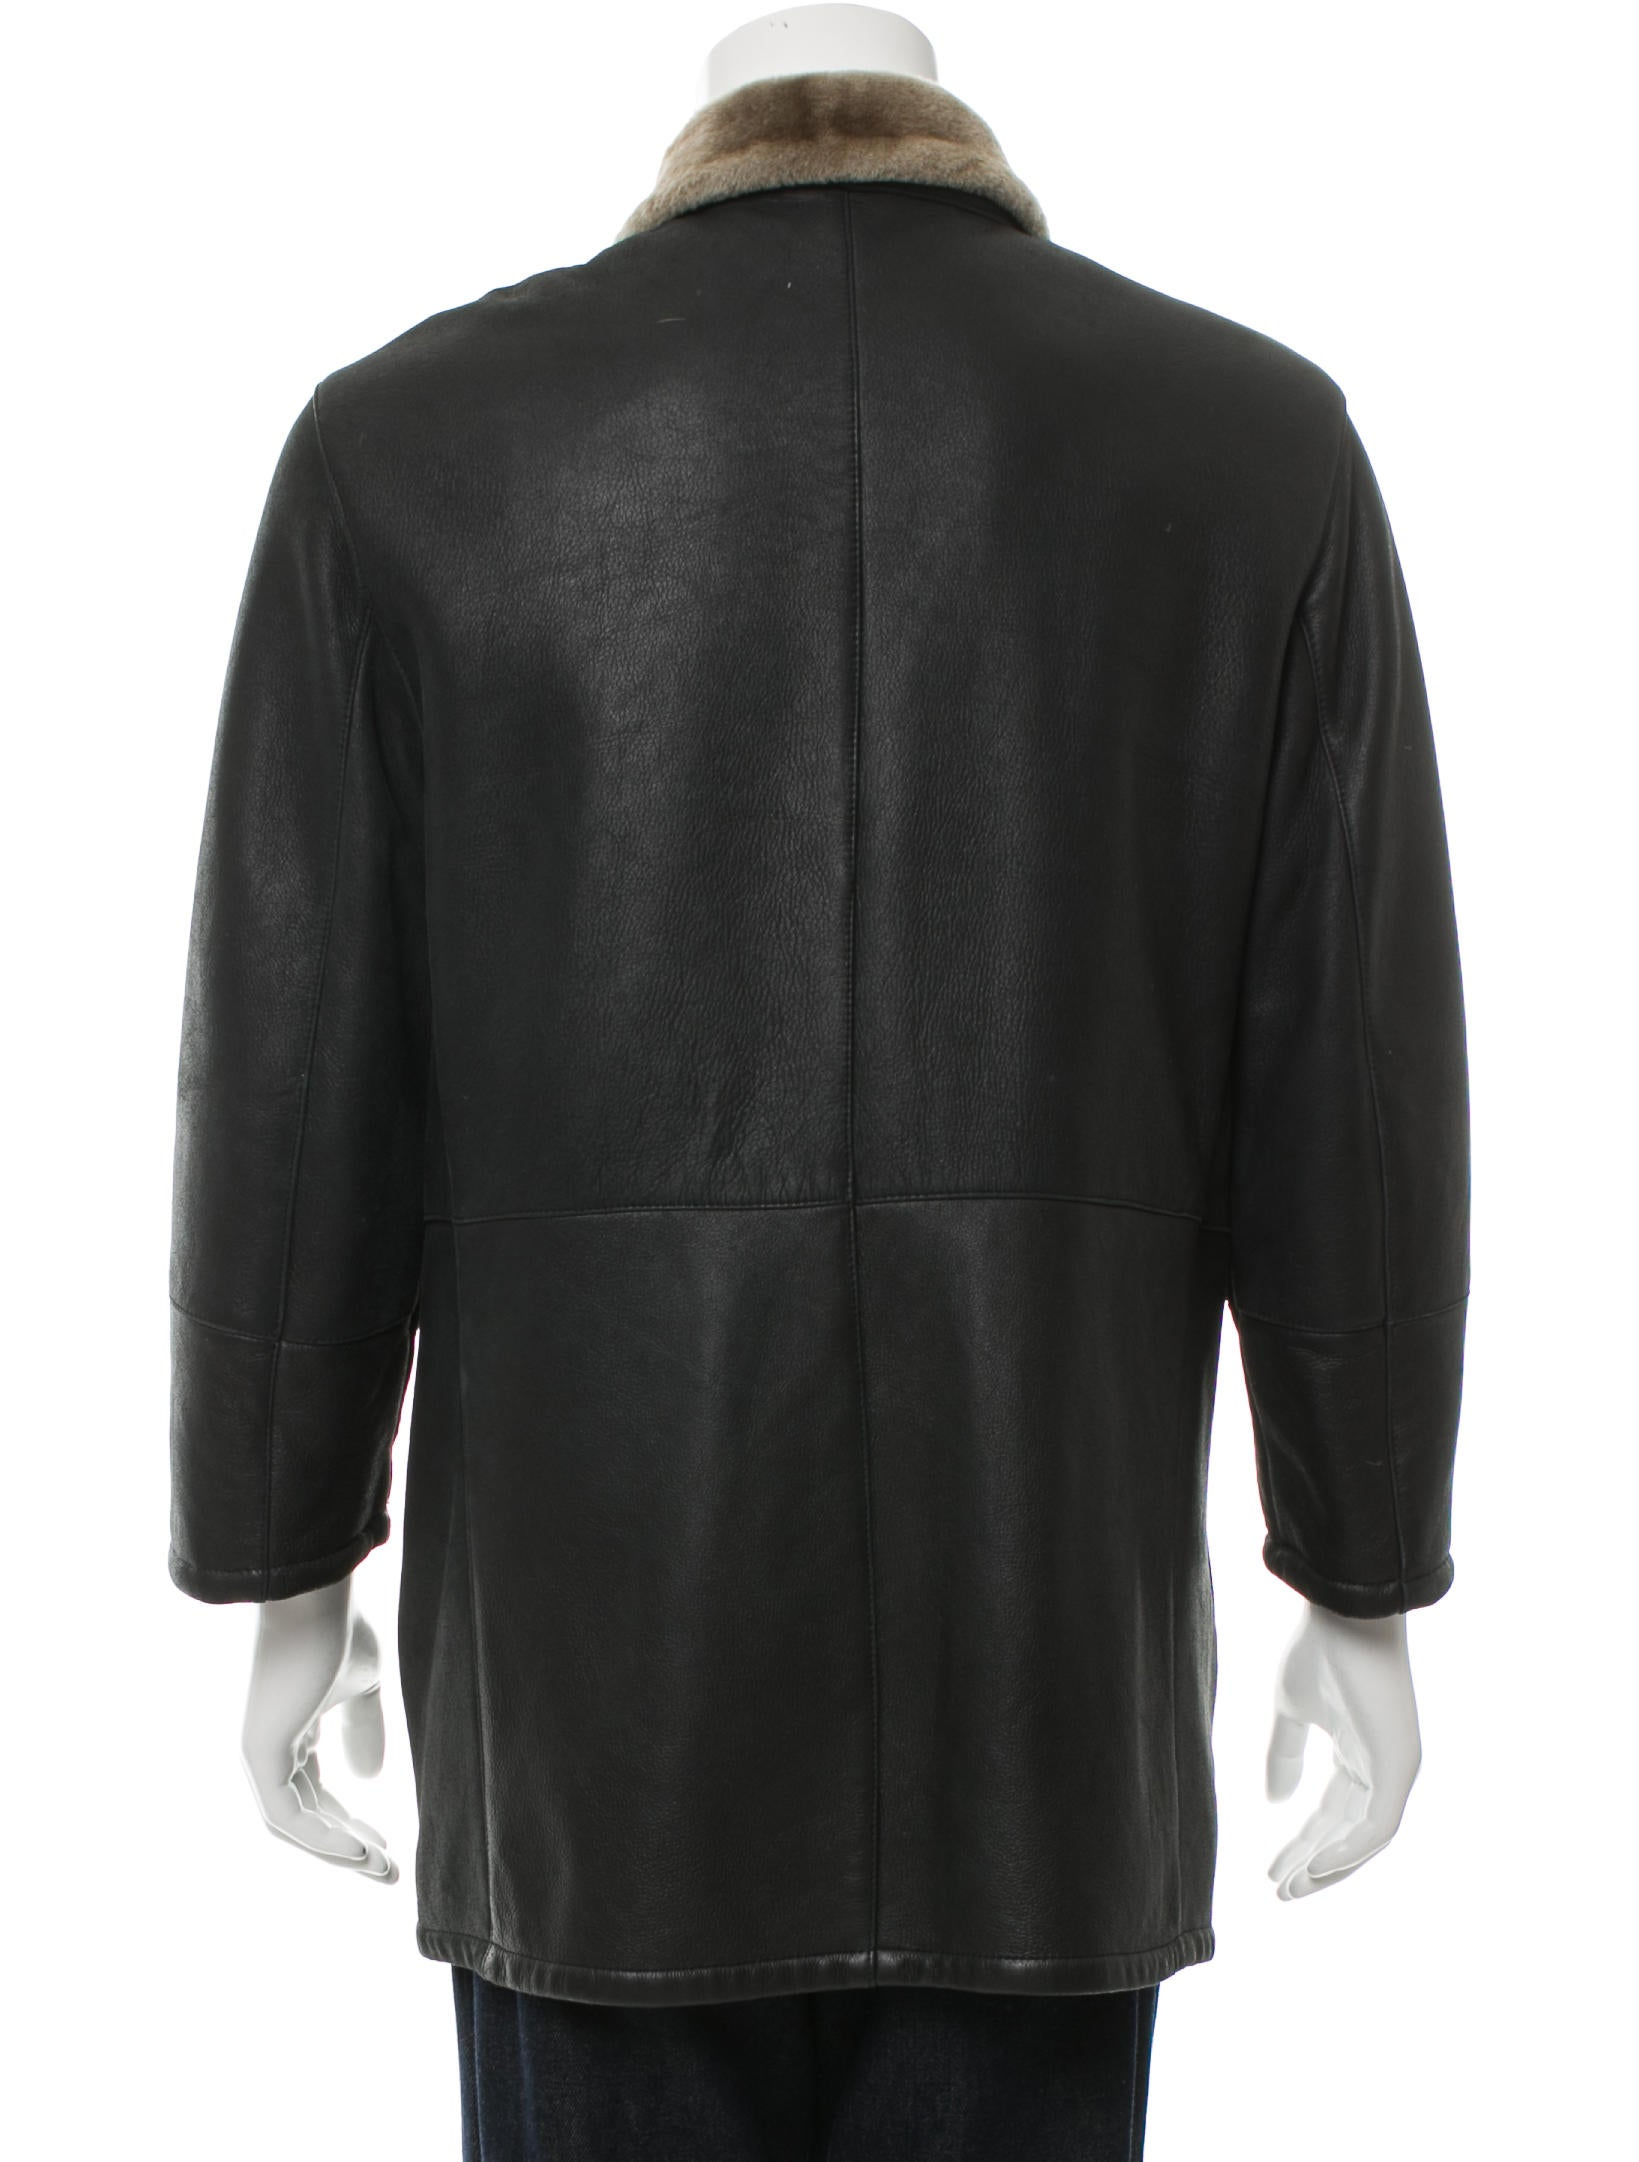 Salvatore Ferragamo Gancini Shearling Coat - Clothing ...